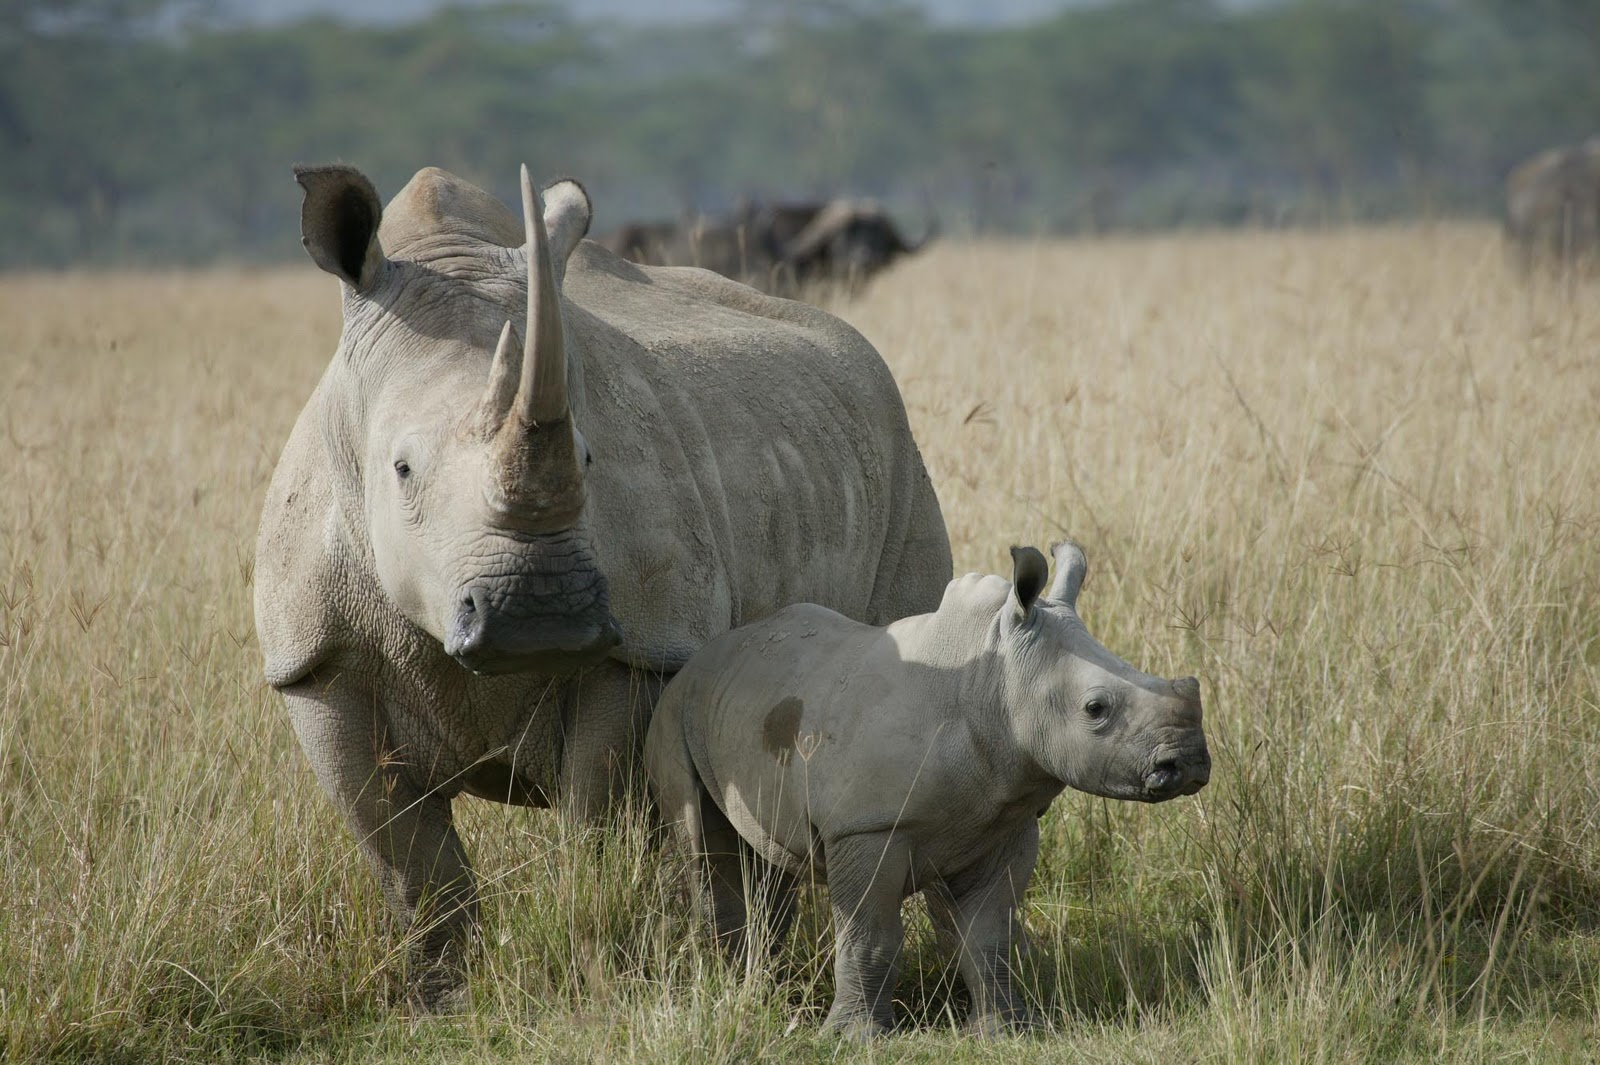 http://1.bp.blogspot.com/-pDtiYh6-crY/TvTdFvBvKqI/AAAAAAAACcM/4o-rbzhYBAI/s1600/White+Rhino+beautiful+dangerous+african+animal+safaris+animal+attacks+news+picture.jpg